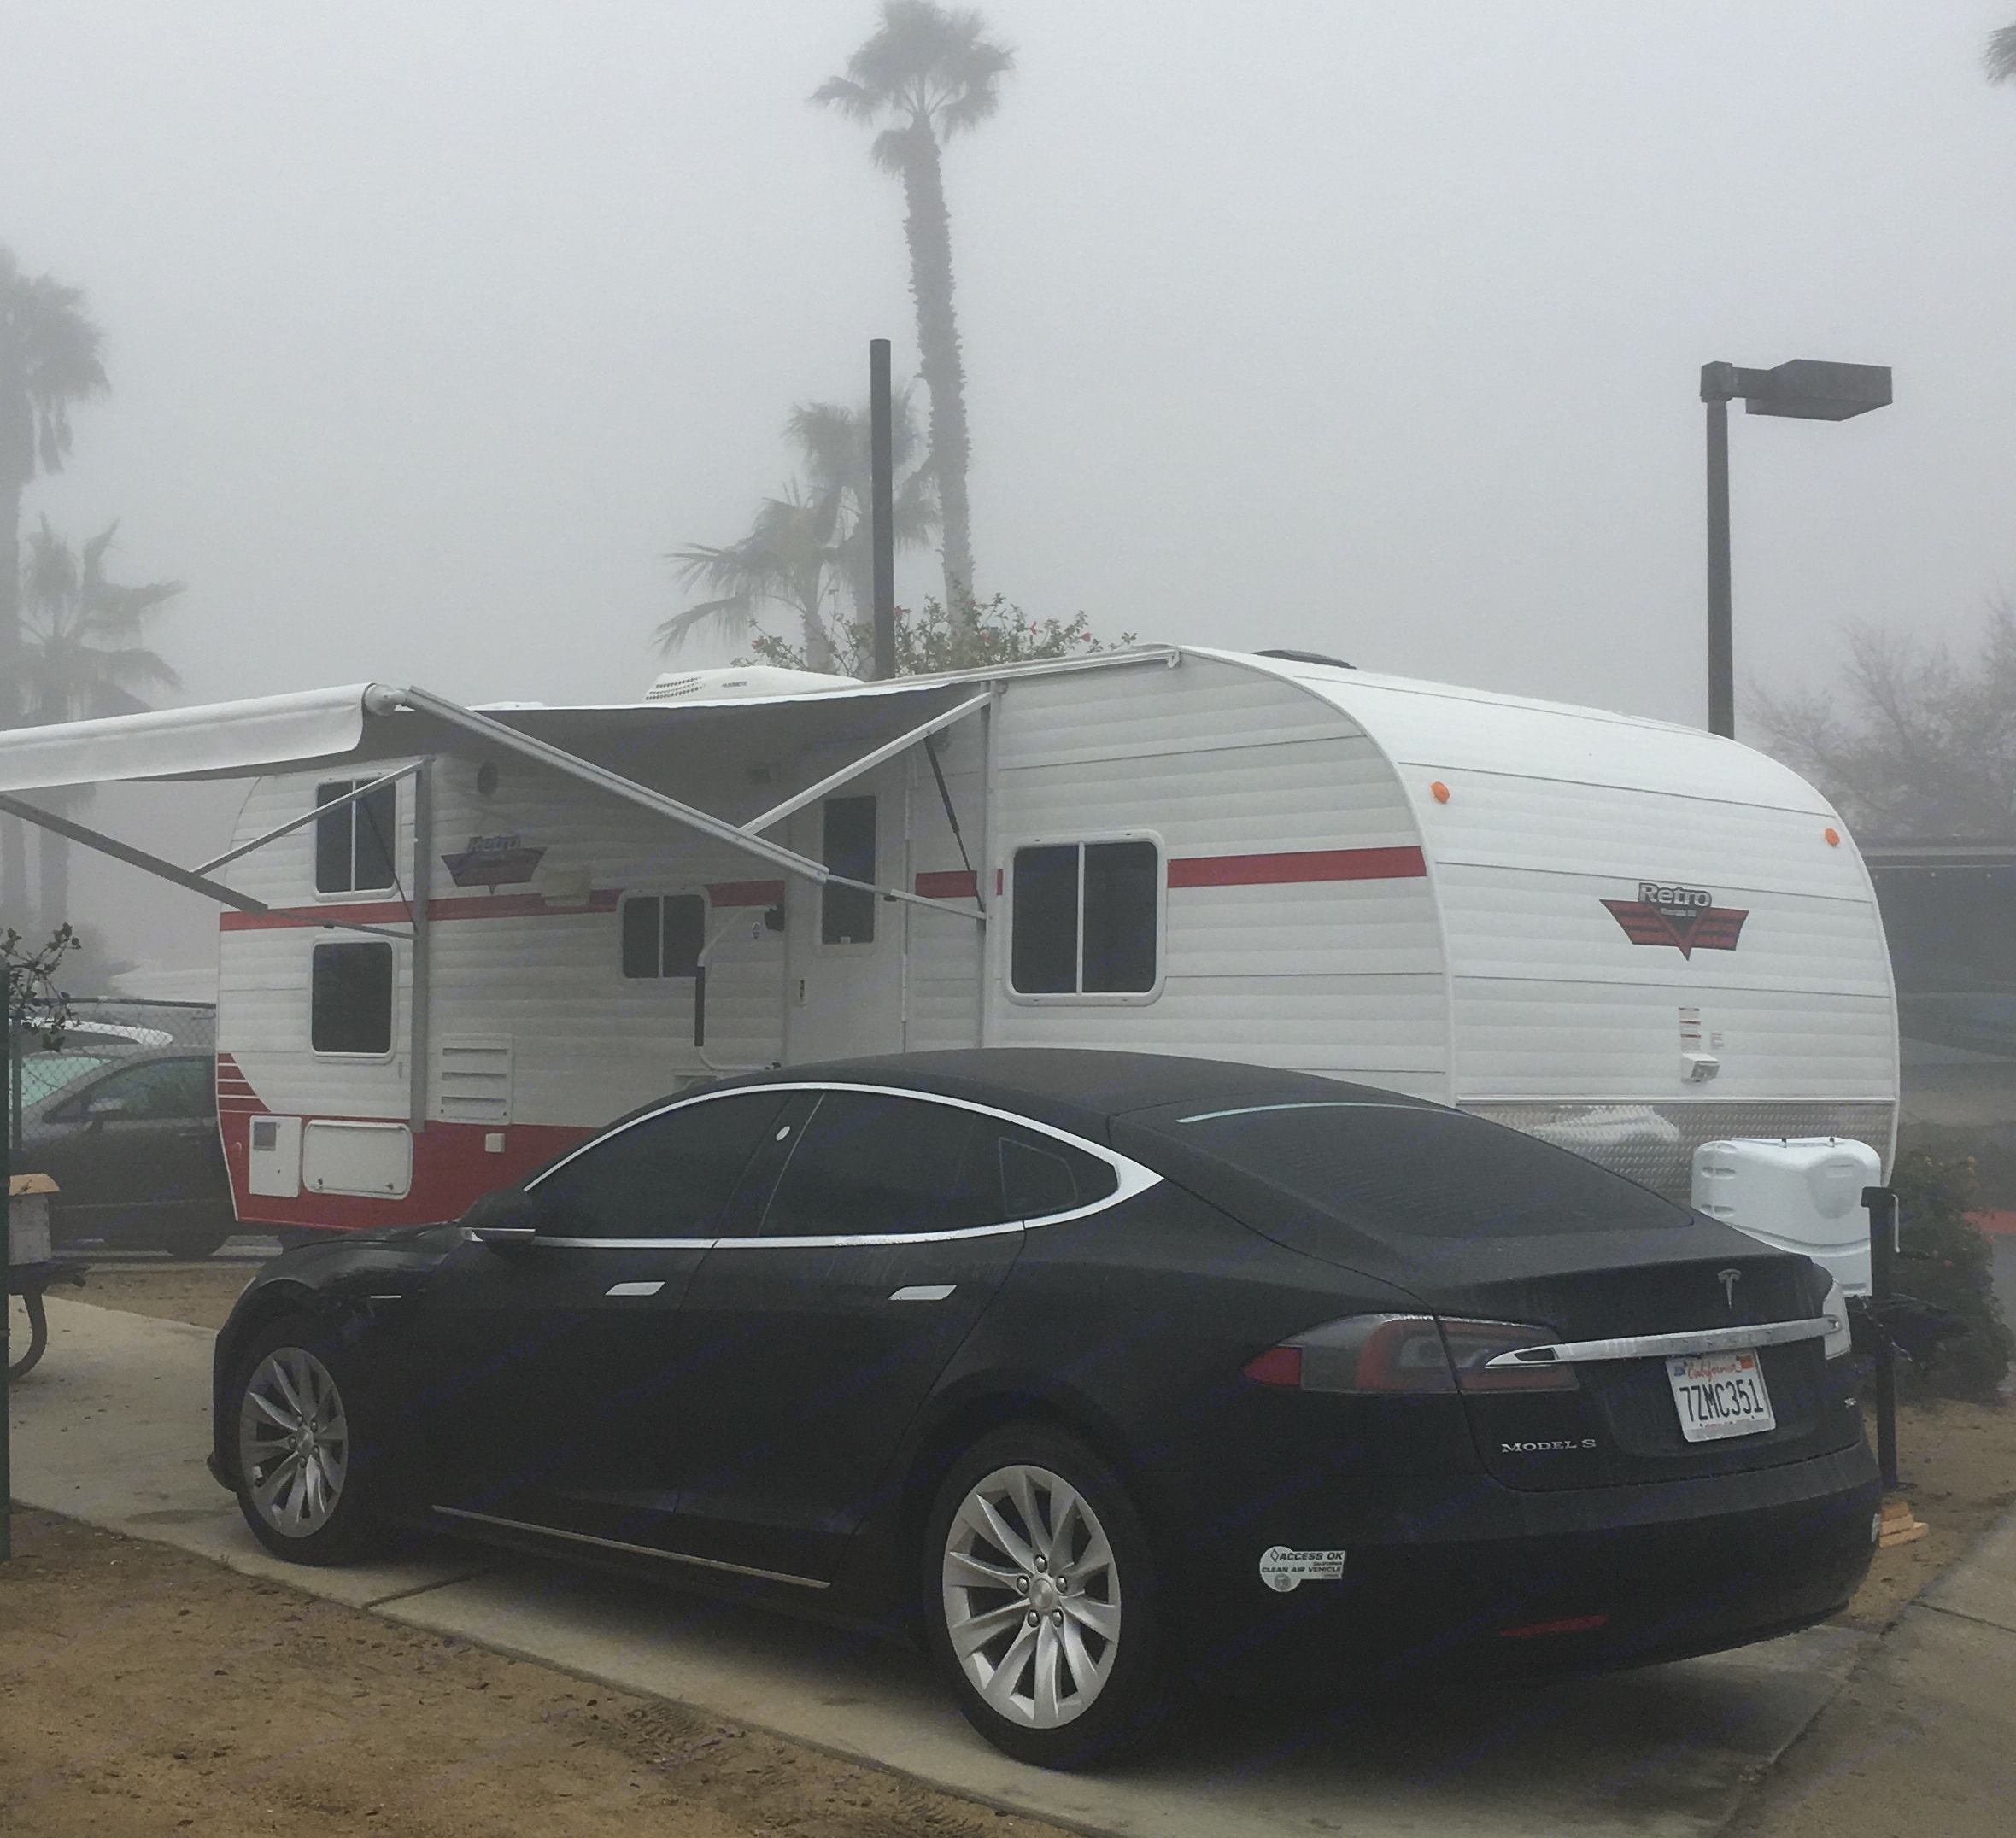 Electric awning, super easy to use. Riverside Rv Whitewater Retro 2018